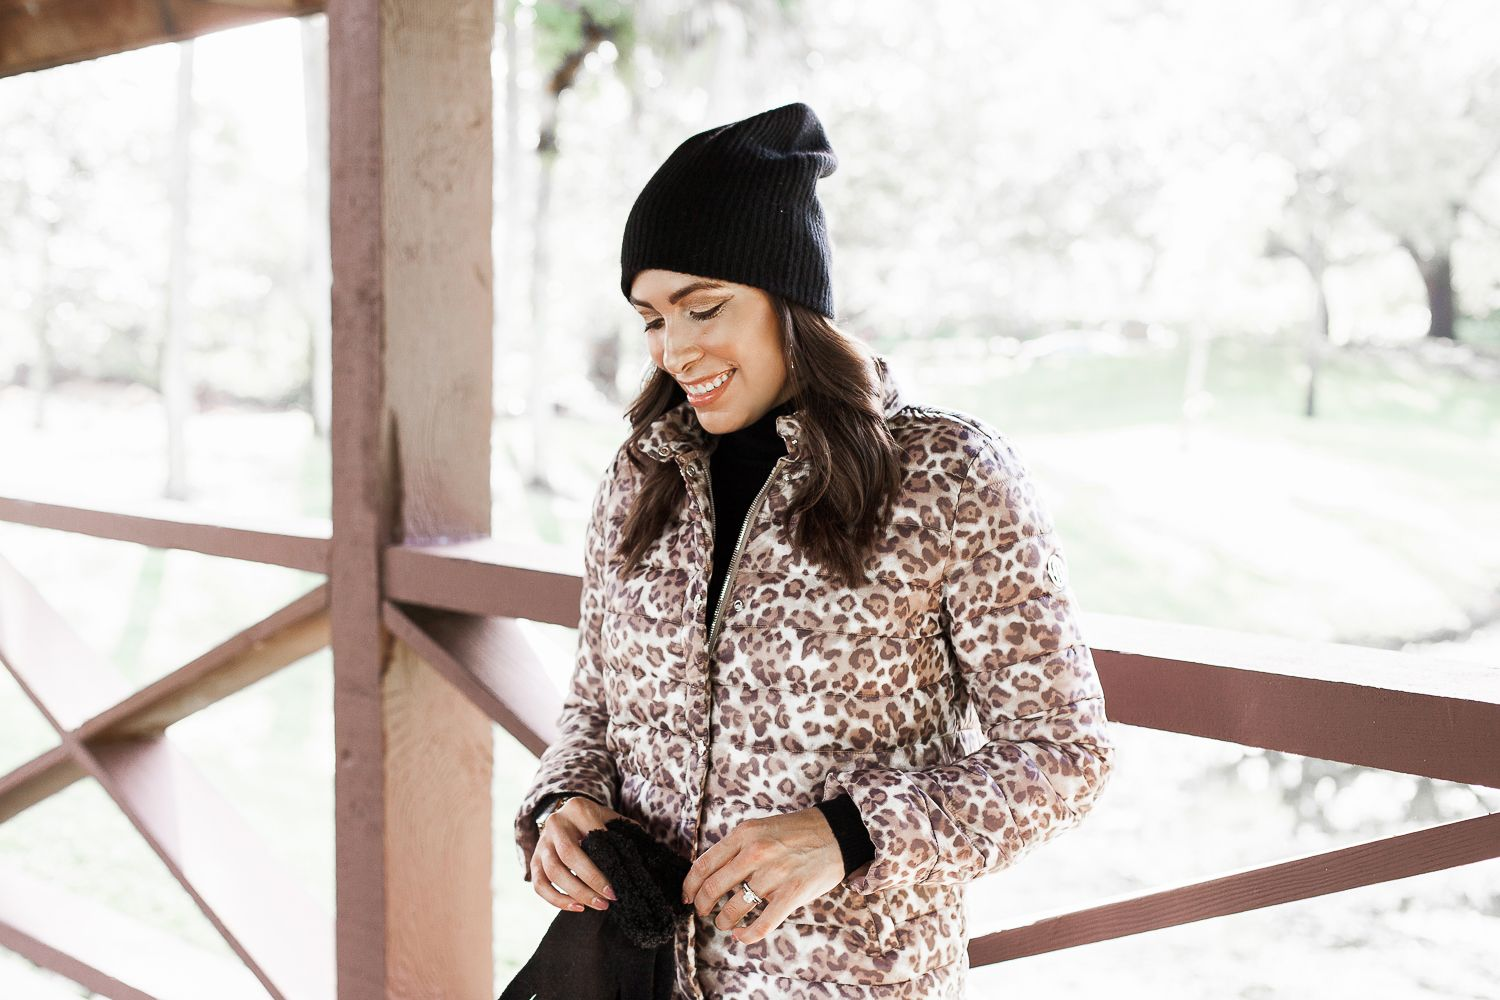 When You Need A Jacket For Fall The Bernardo Puffer Coat Is A Top Pick An Updated Style This Season This Leopard Puffer Ja Puffer Coat Express Leggings Coat [ 1000 x 1500 Pixel ]